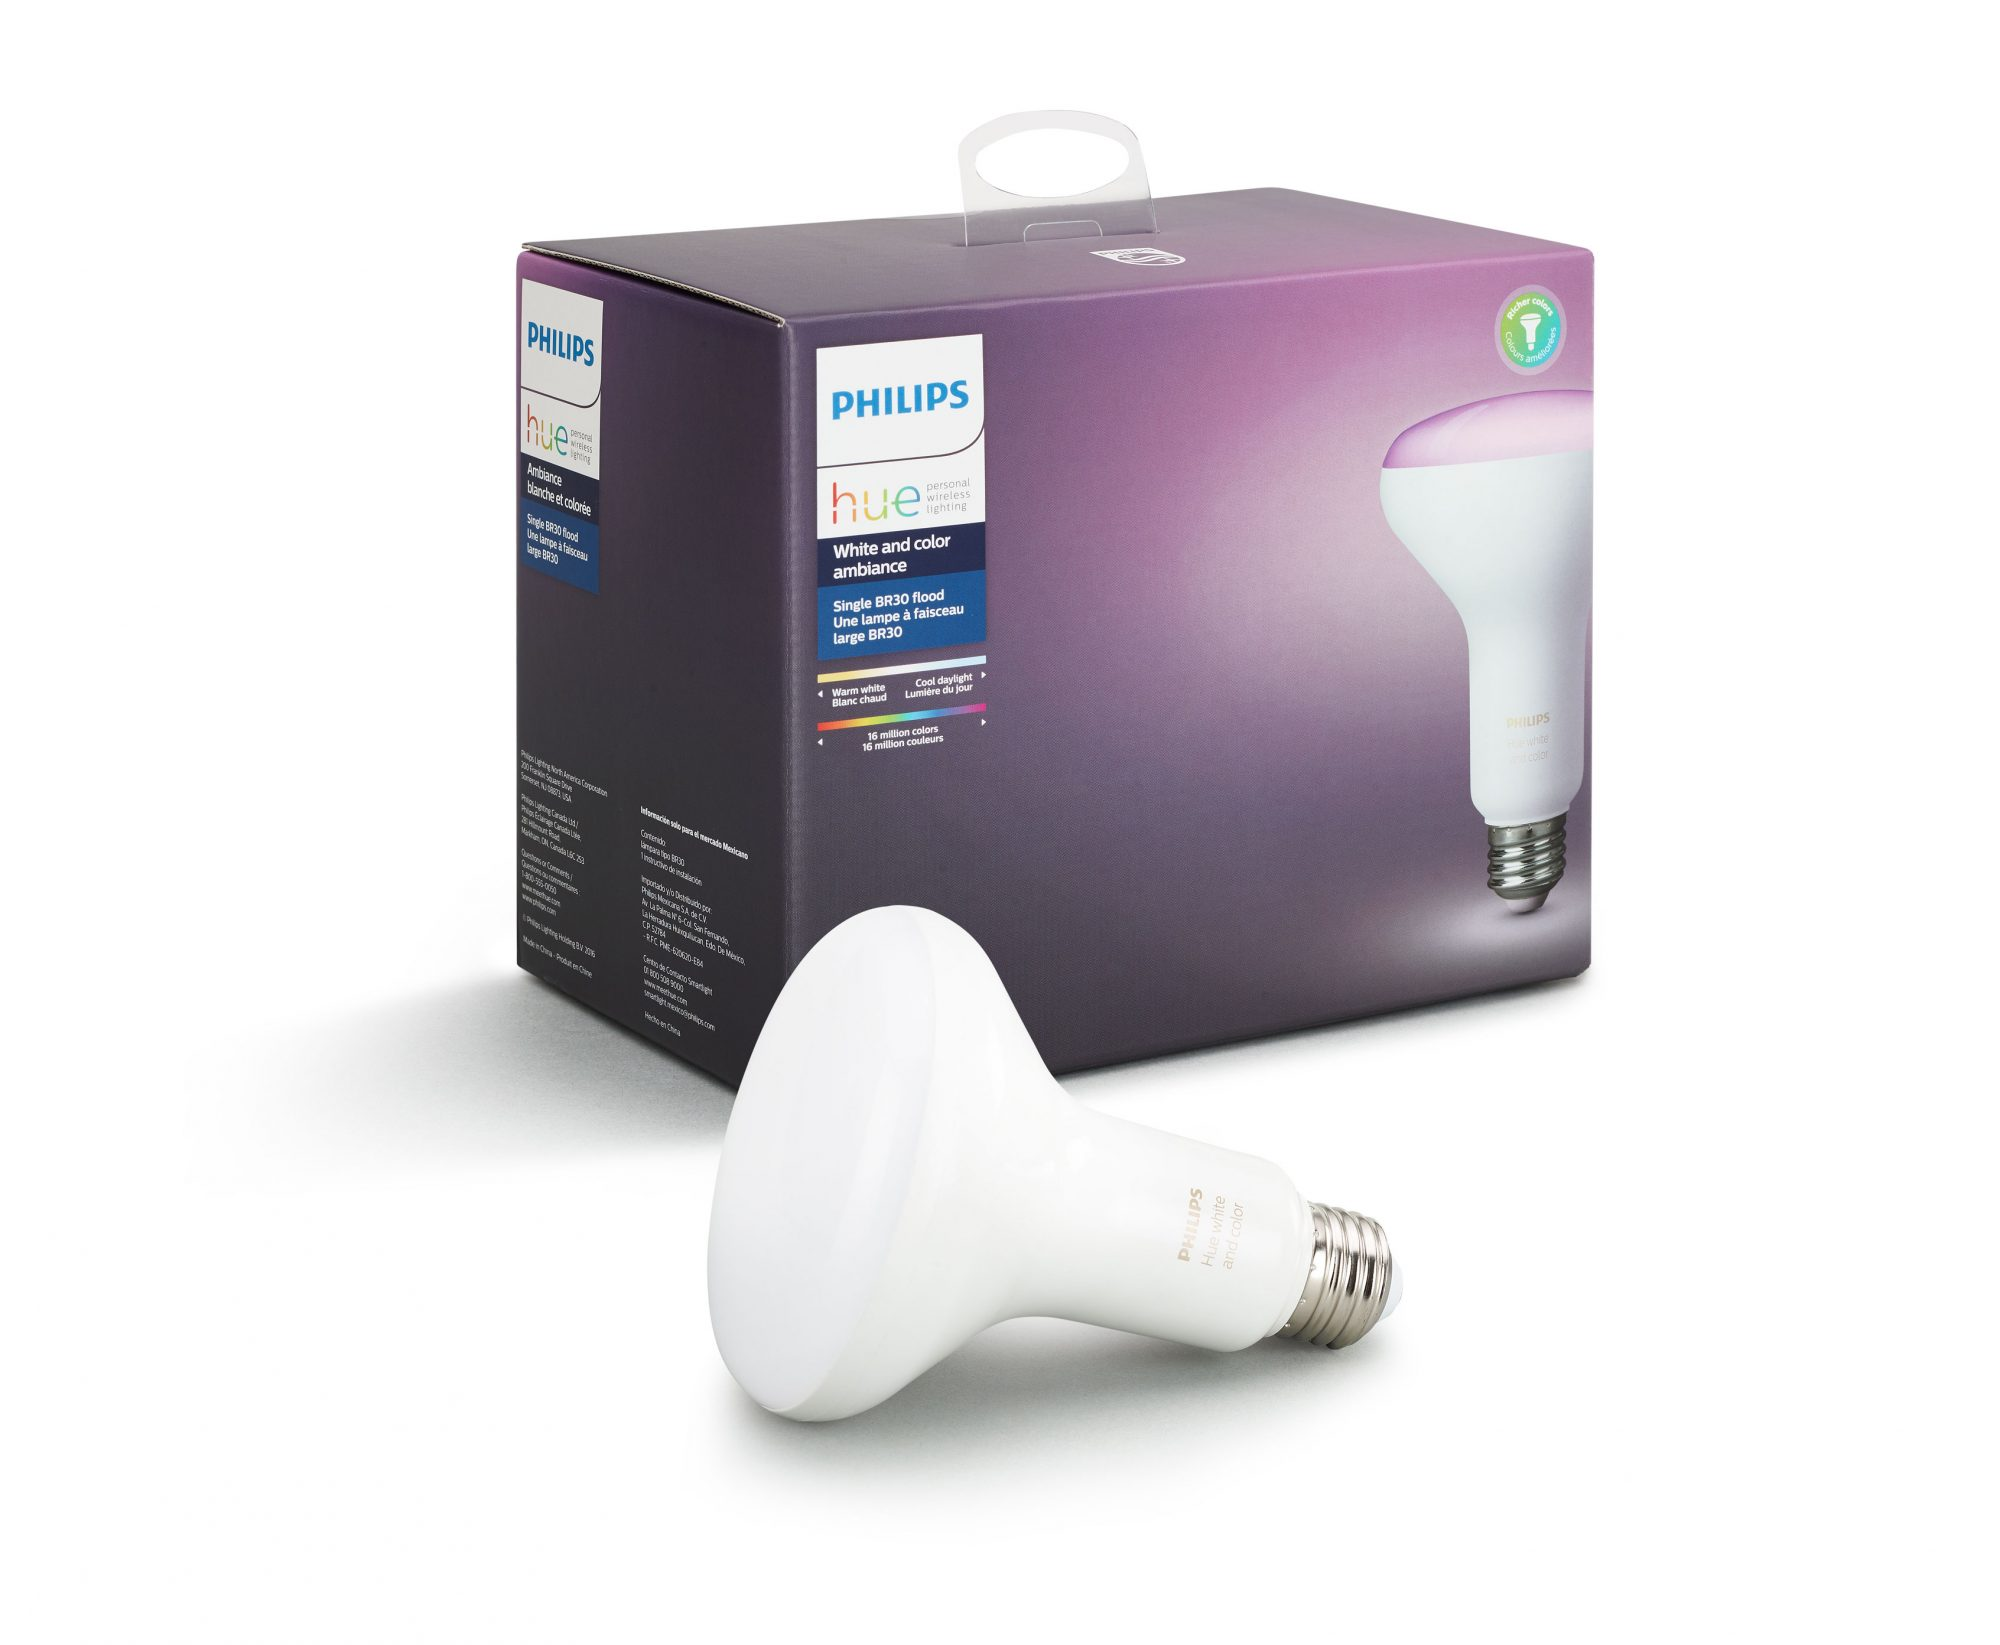 Philips Hue White and Color Ambiance LED Smart Wireless Light Bulb